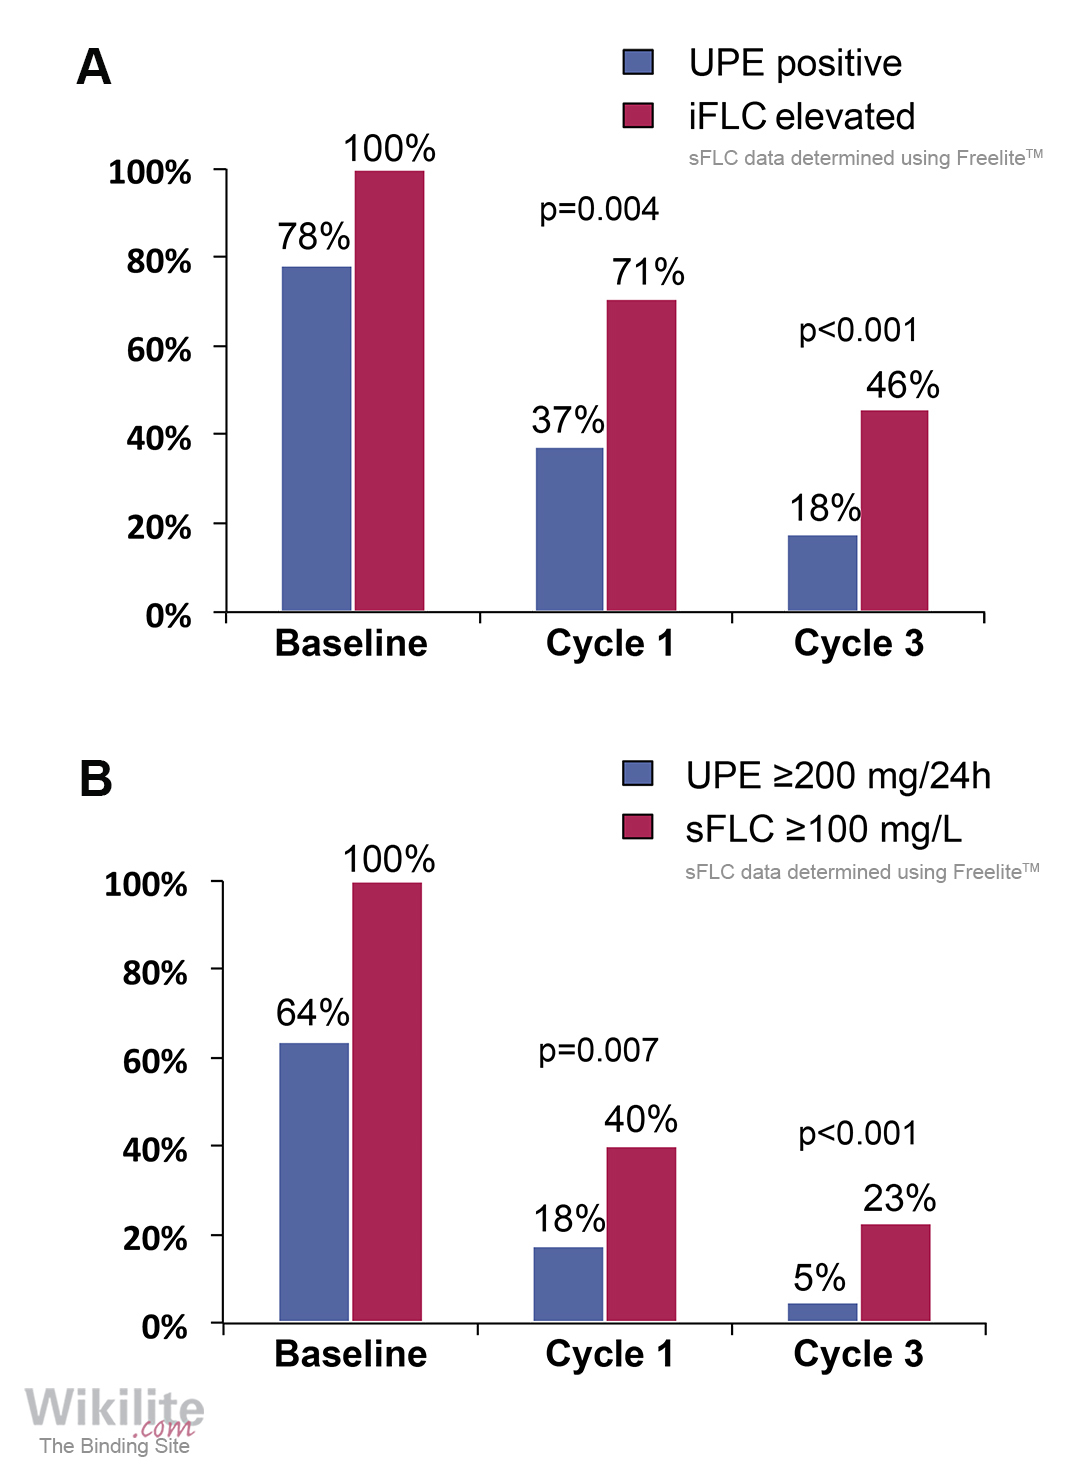 Figure 15.4. Sensitivity of serum and urine FLC measurements.